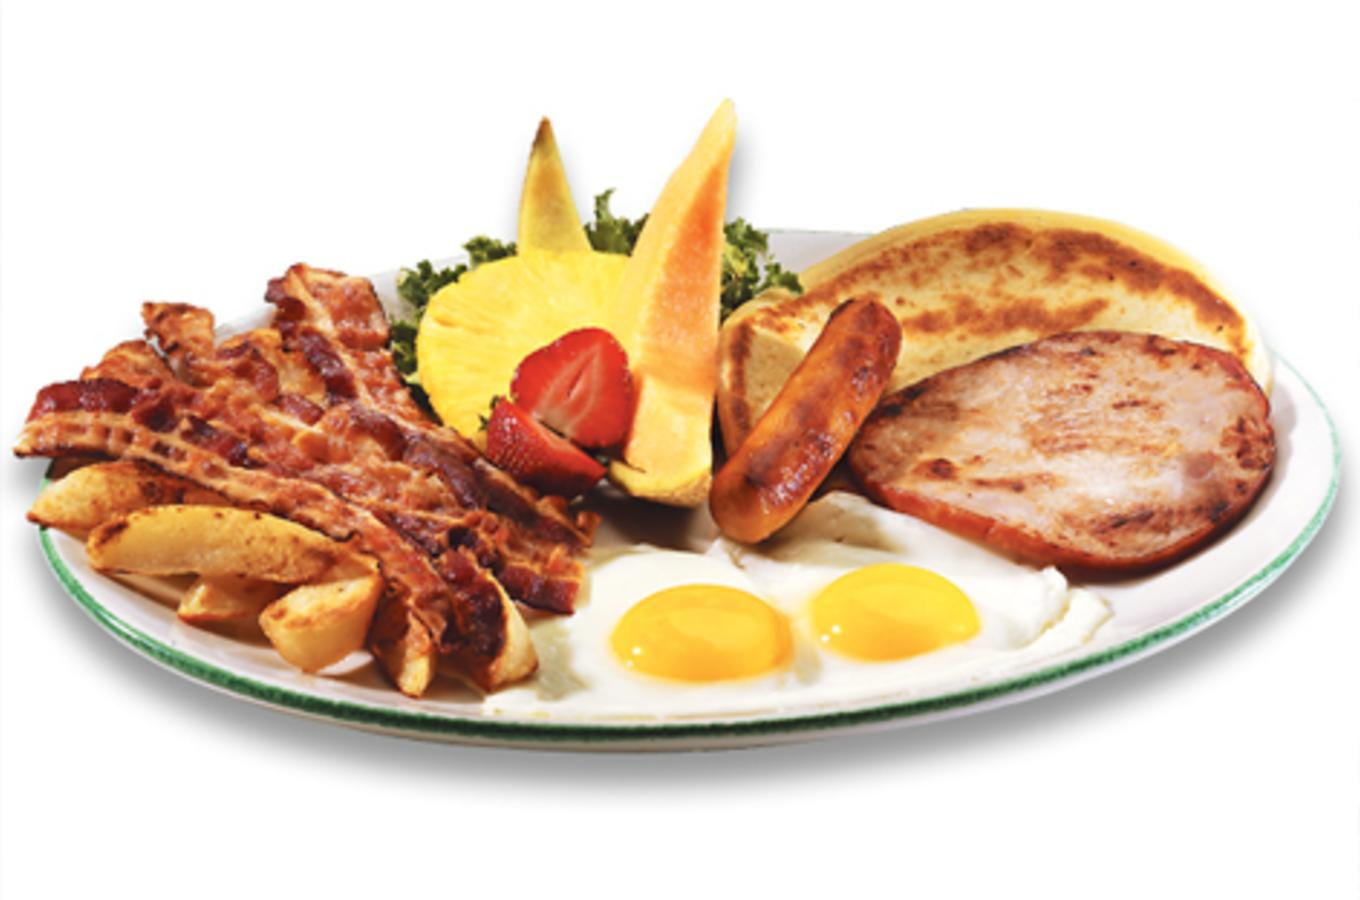 Cora Breakfast & Lunch Image